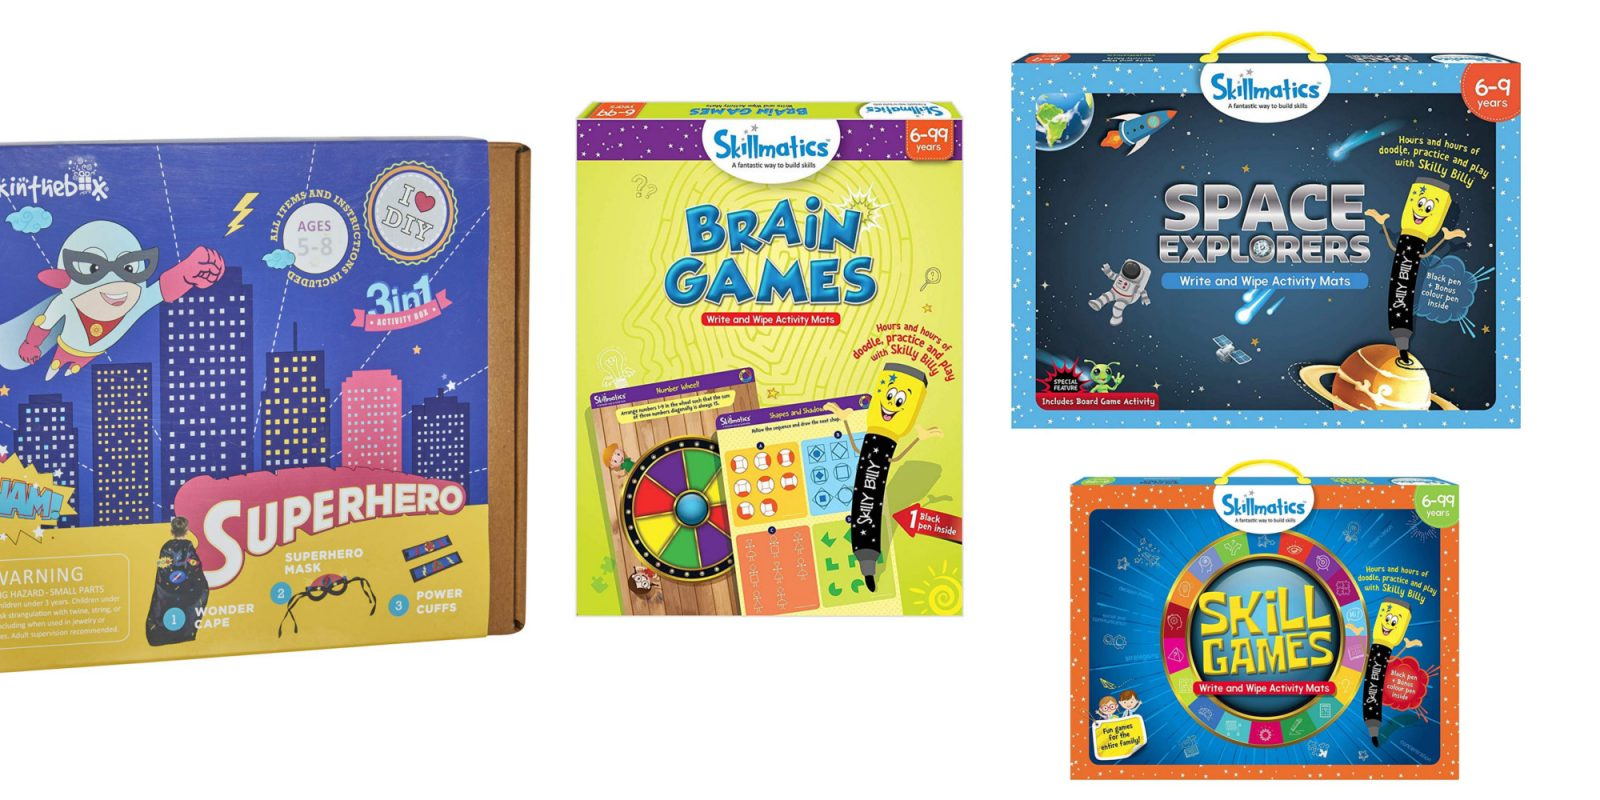 Keep the kids sharp with these brain games & craft kits from $8.50 on Amazon